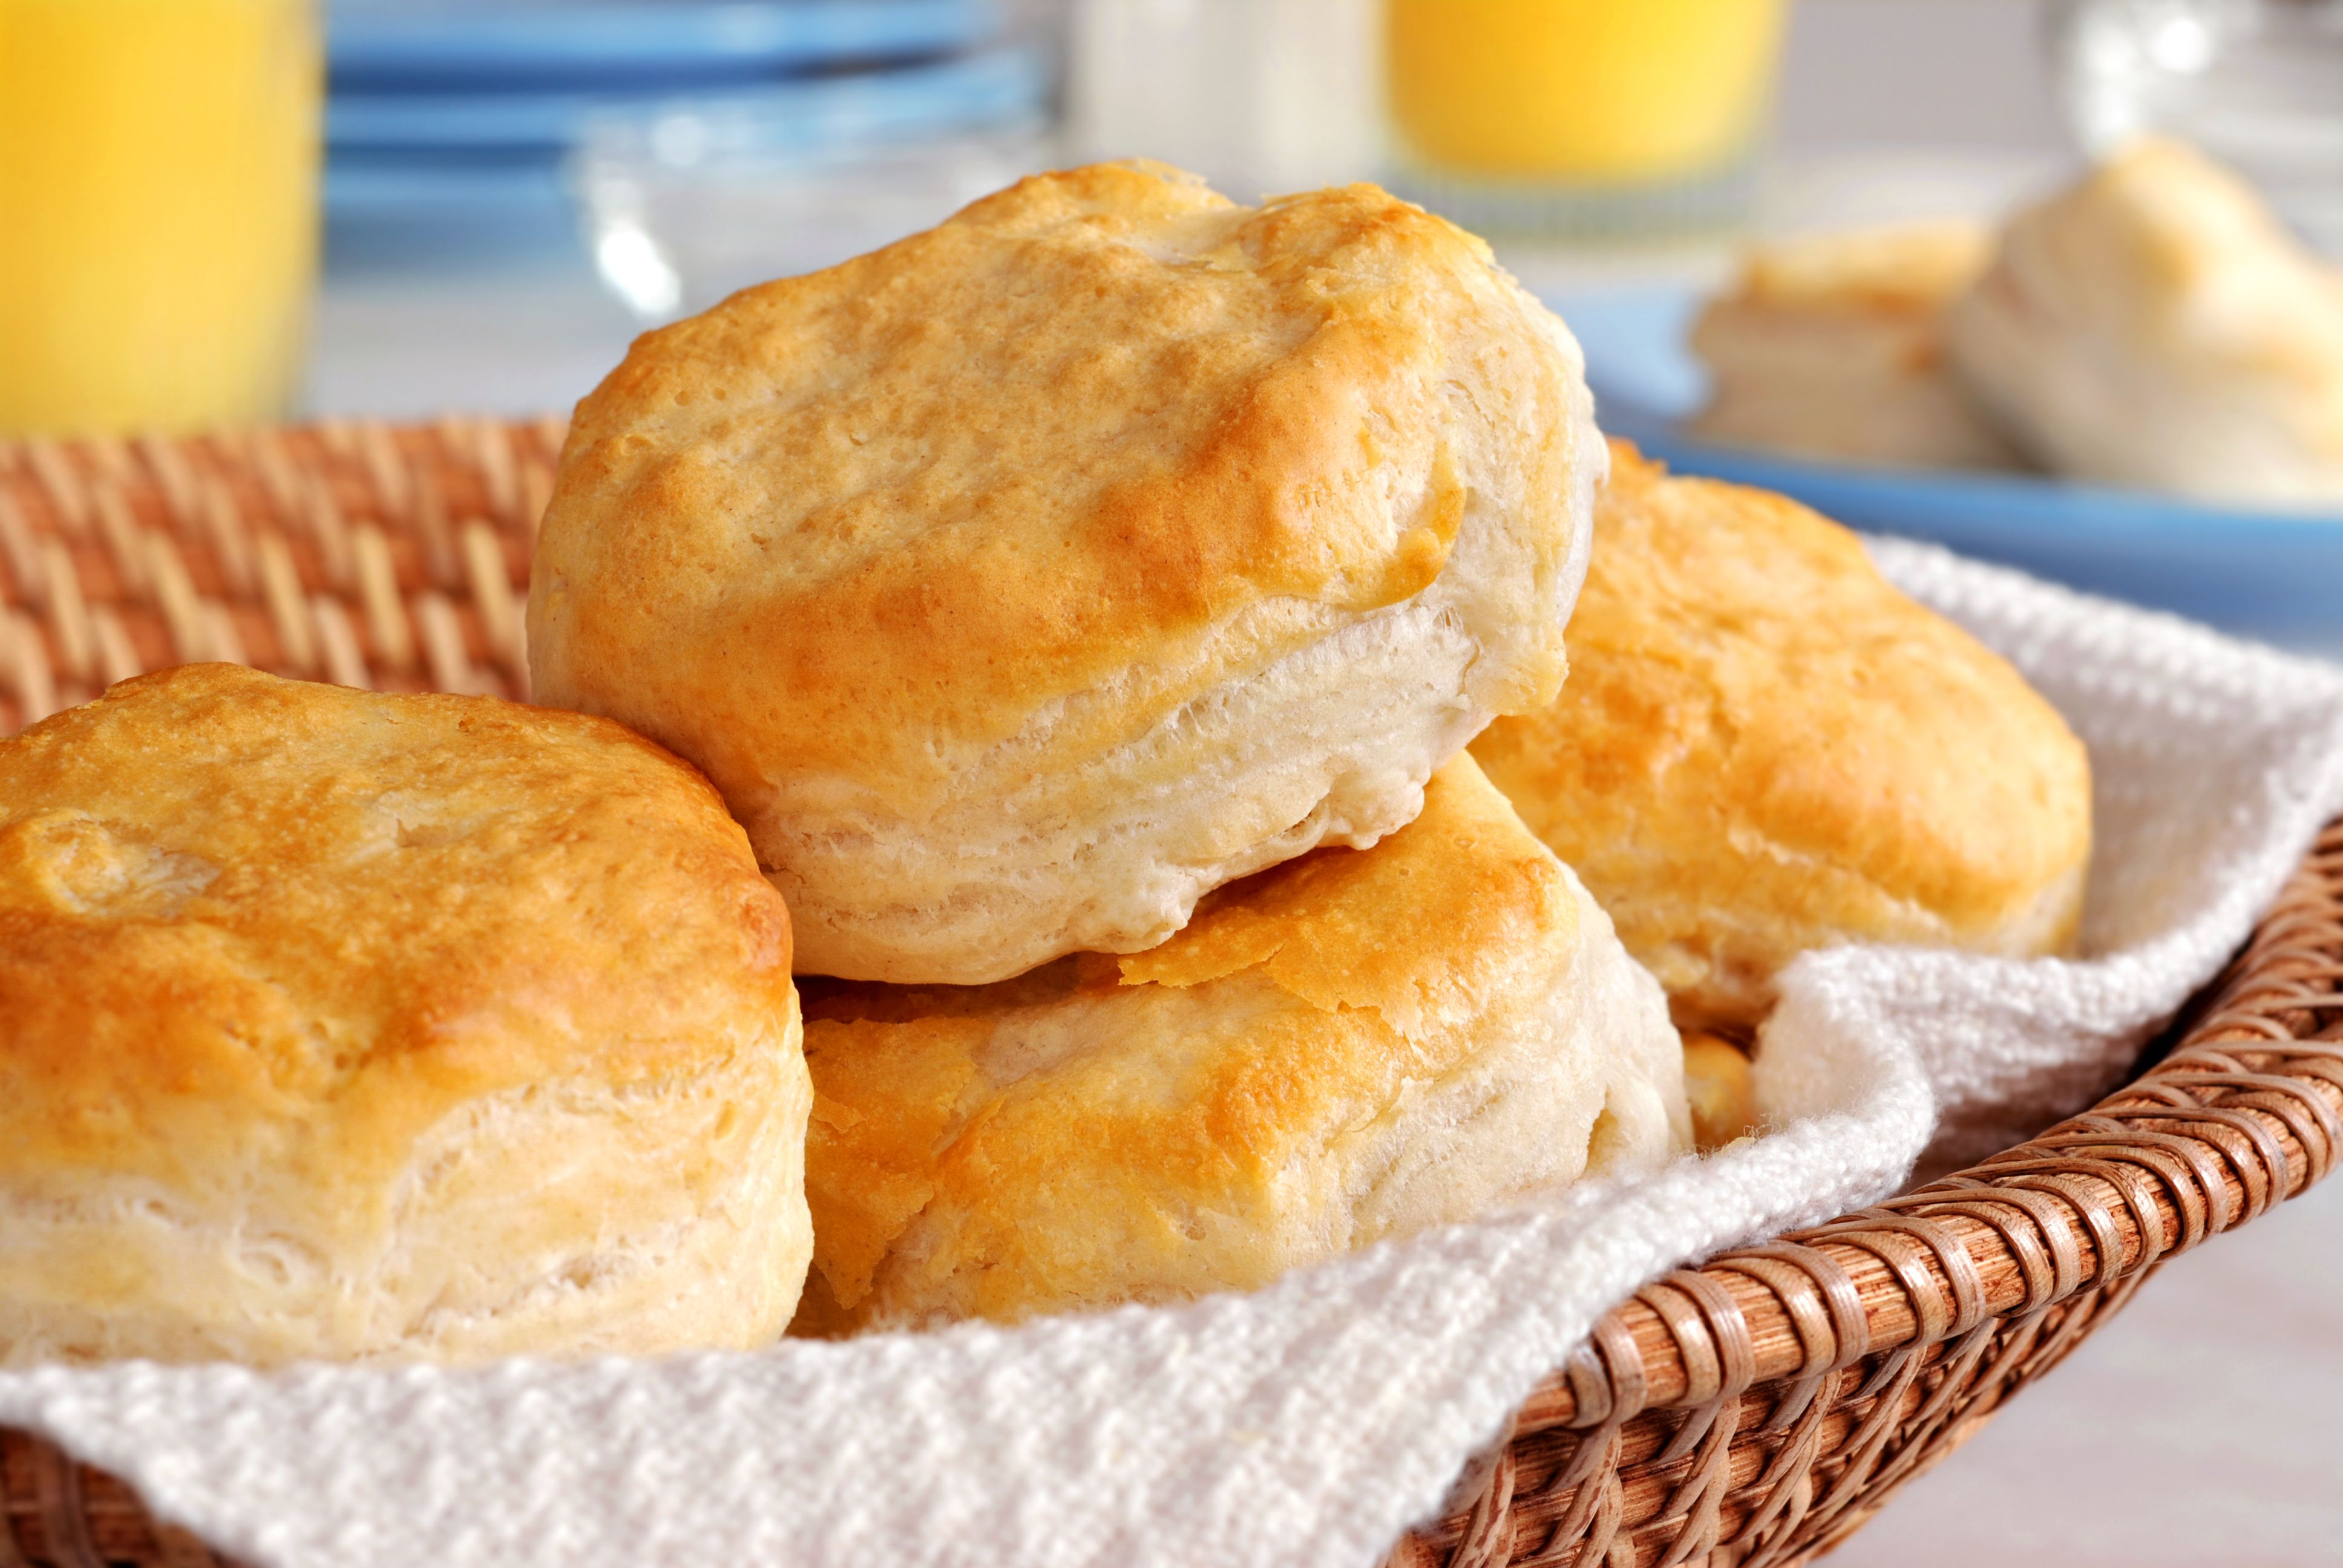 Popeyes Biscuit Meme End It All